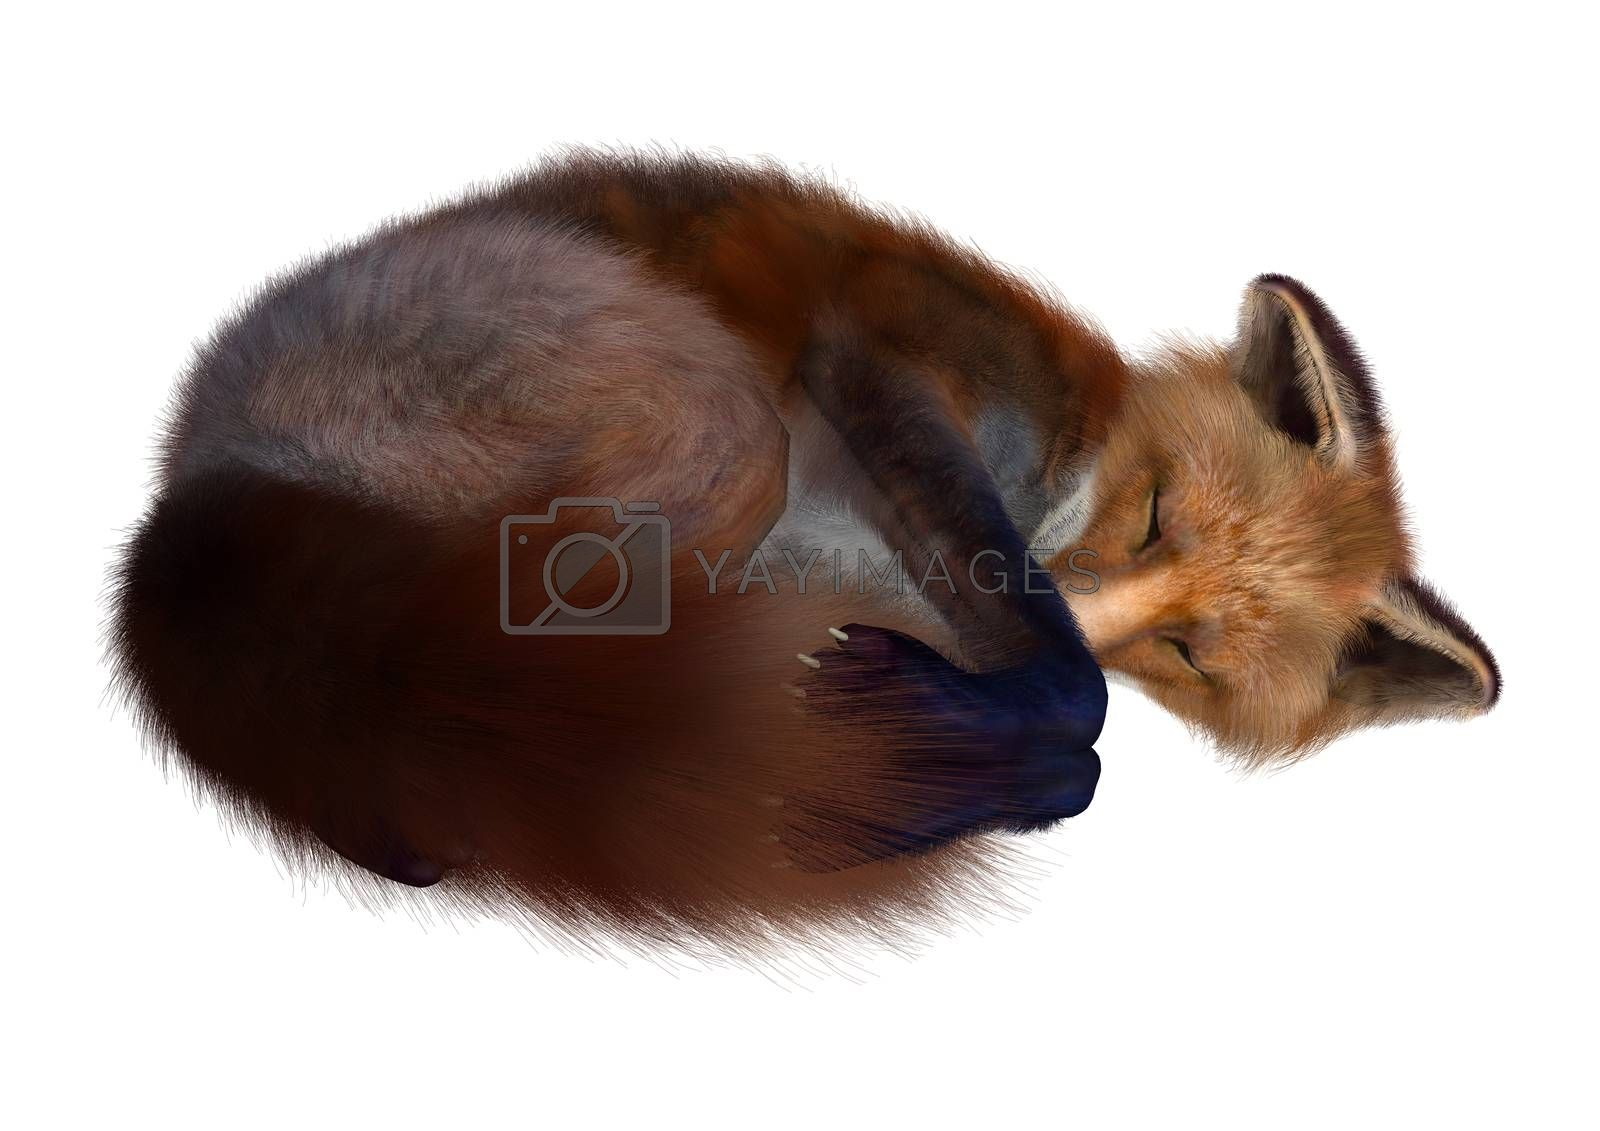 3D digital render of a red fox sleeping isolated on white background